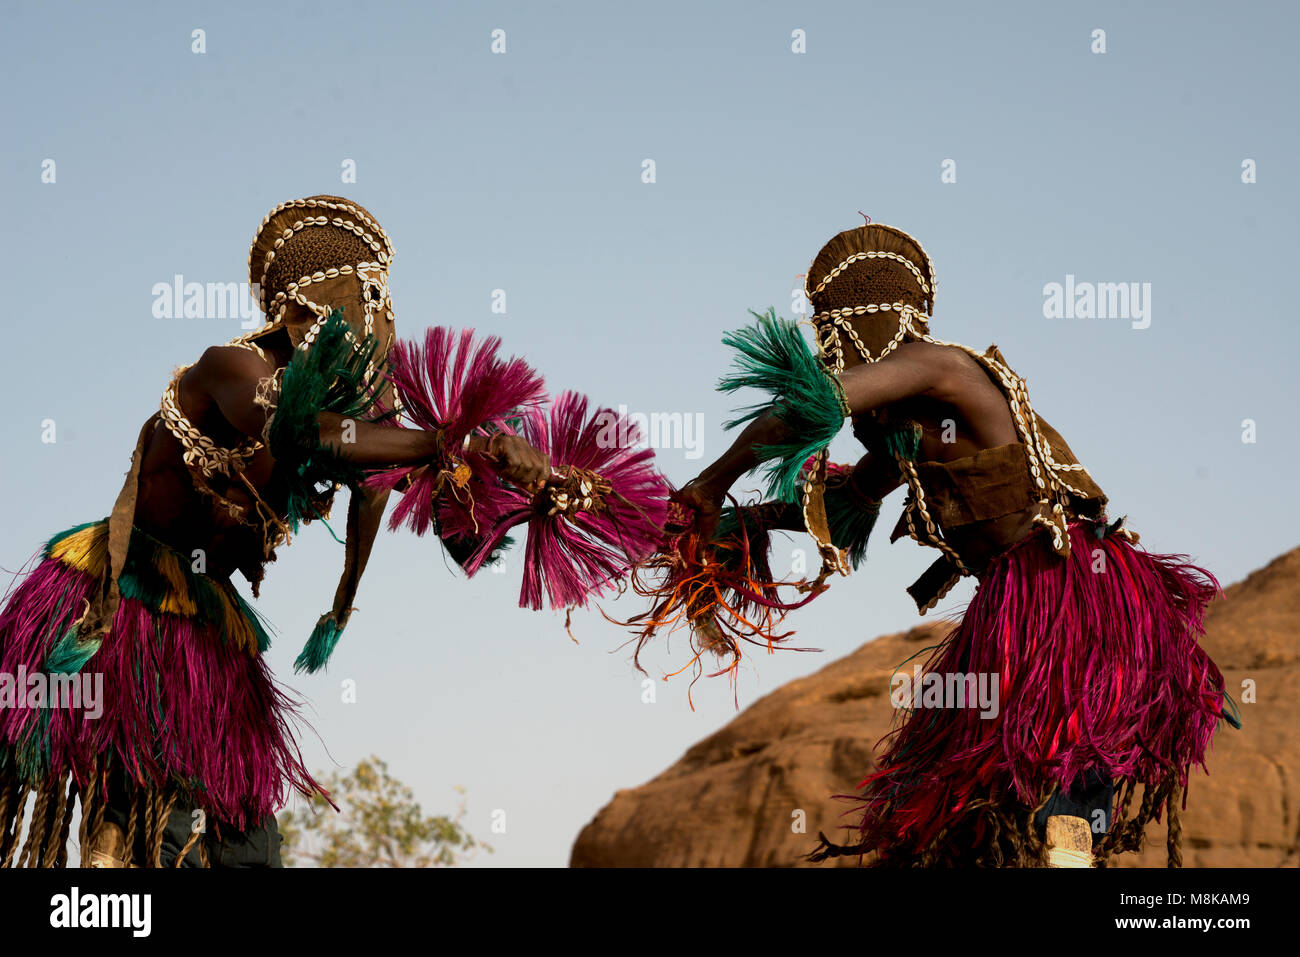 Two masked indigenous Dogon men in traditional costumes taking part in a traditional dance. Mali, West Africa. - Stock Image